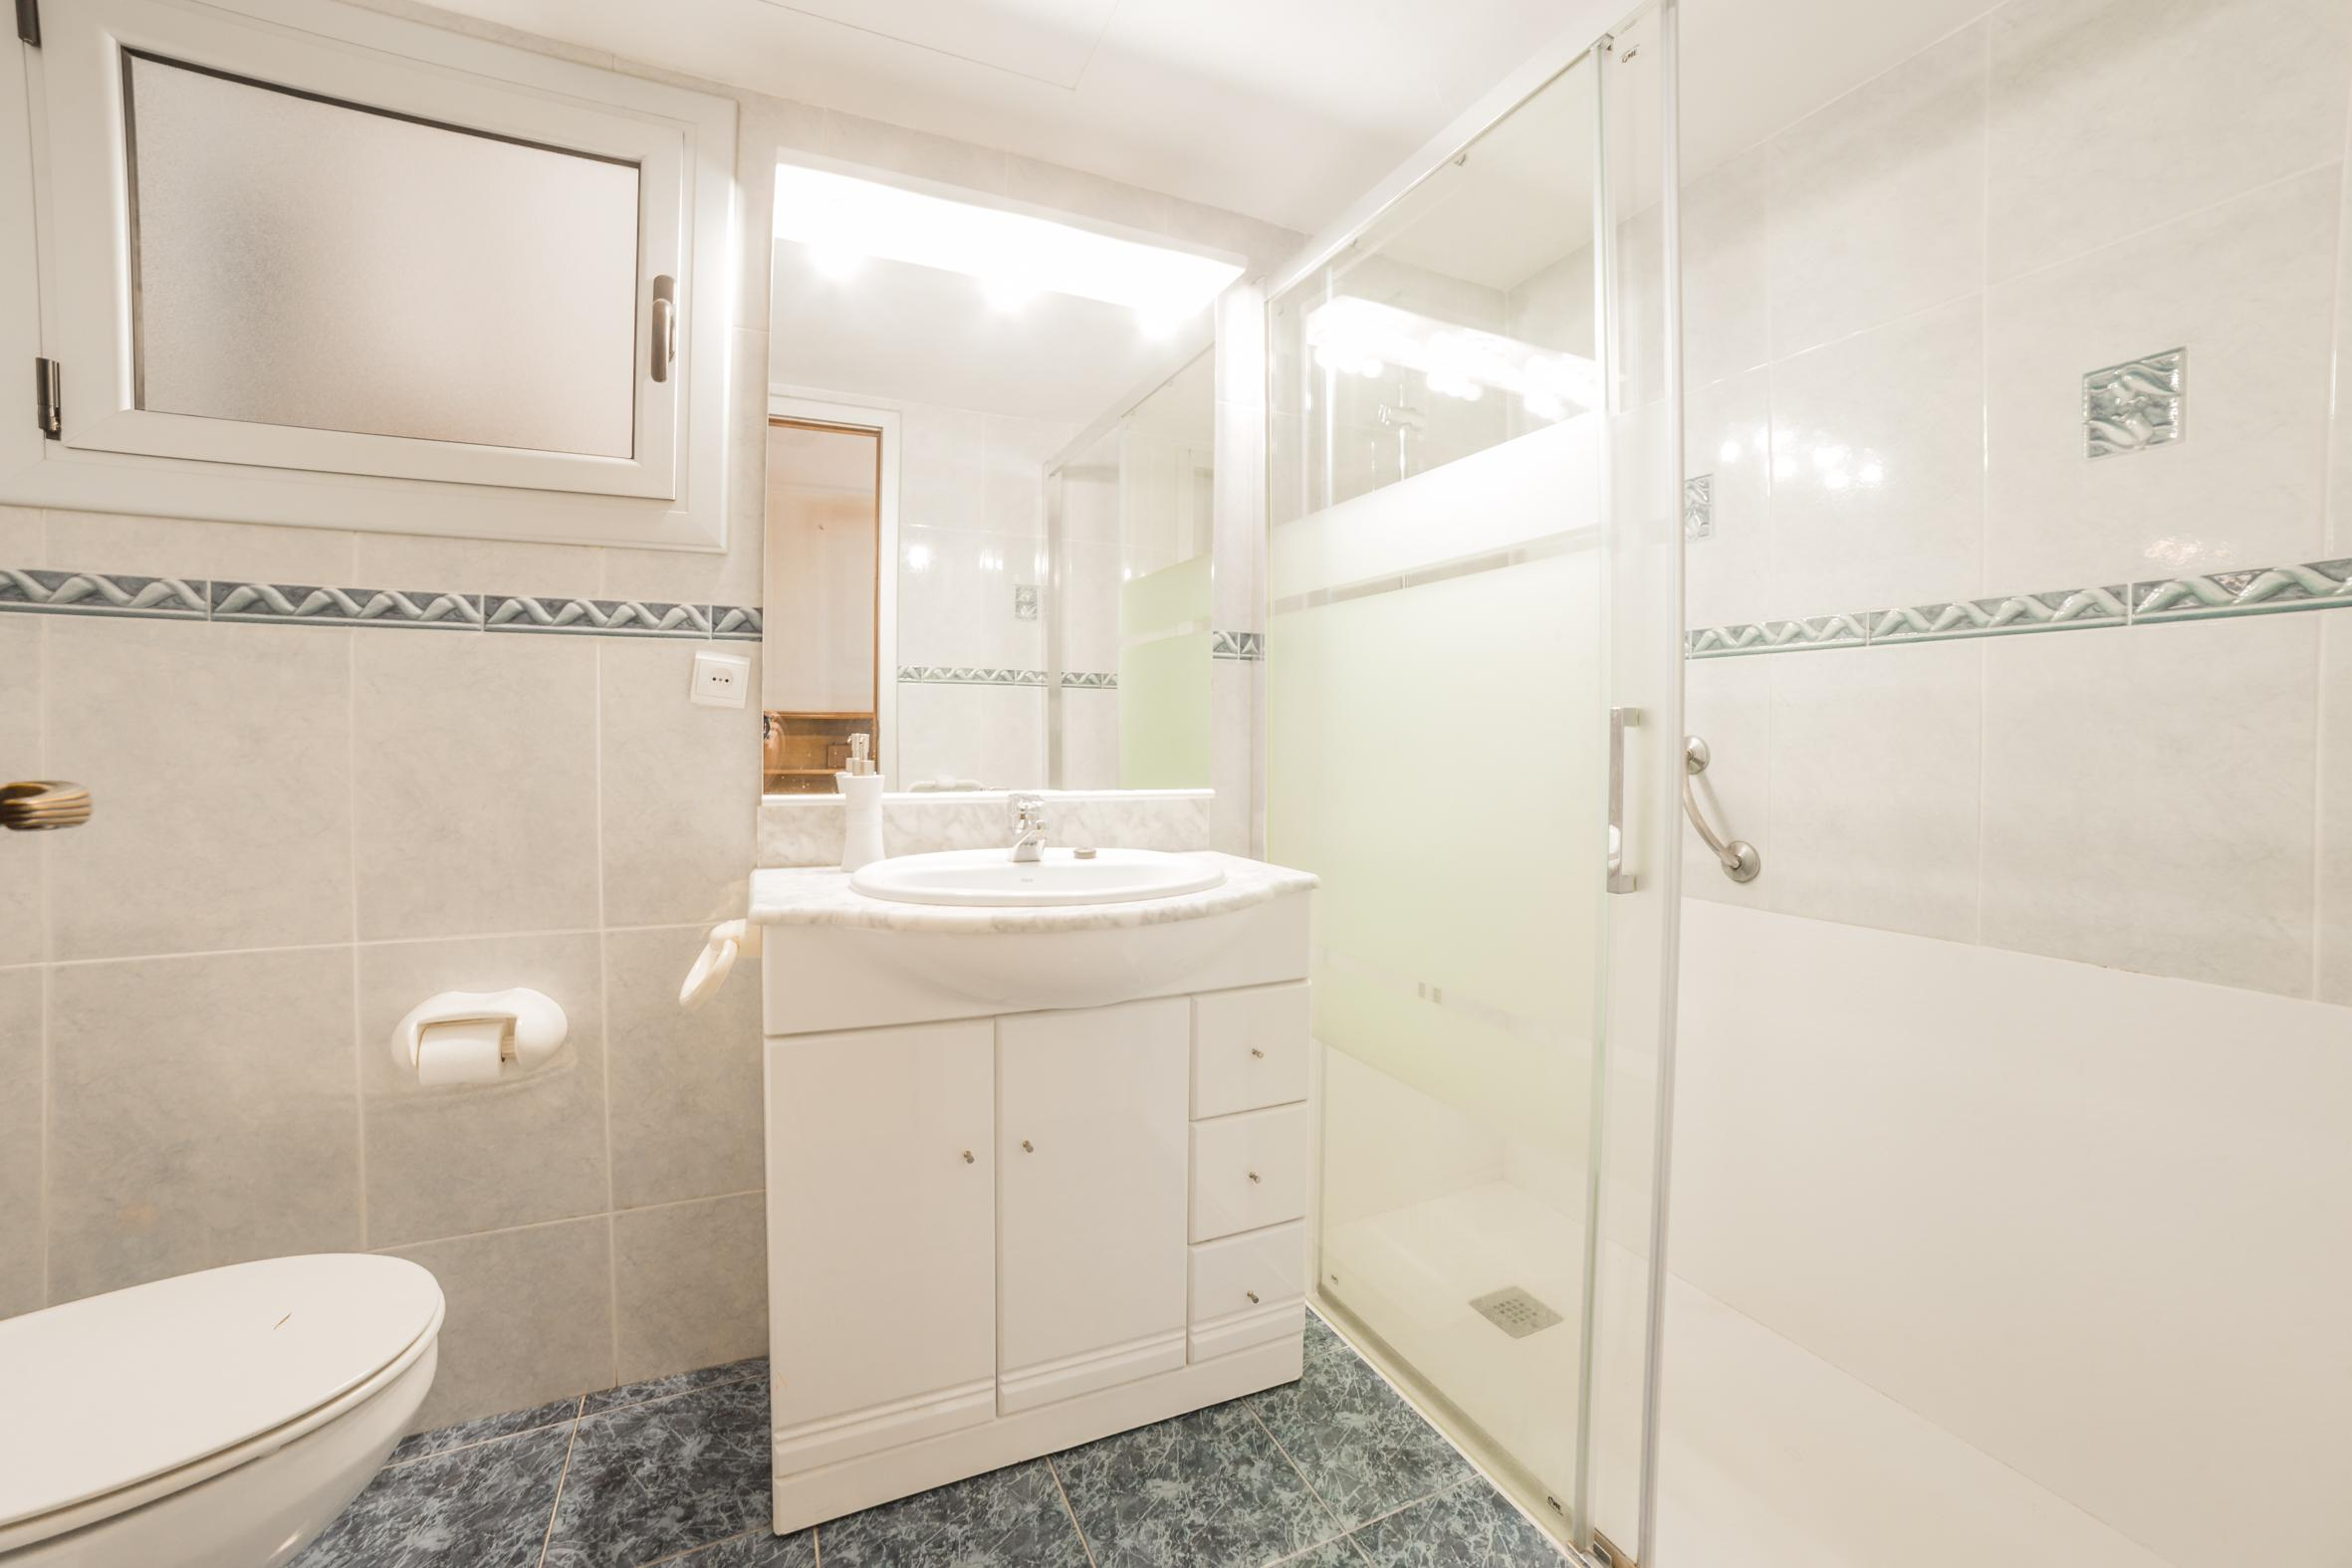 248988 Flat for sale in Les Corts, Les Corts 26